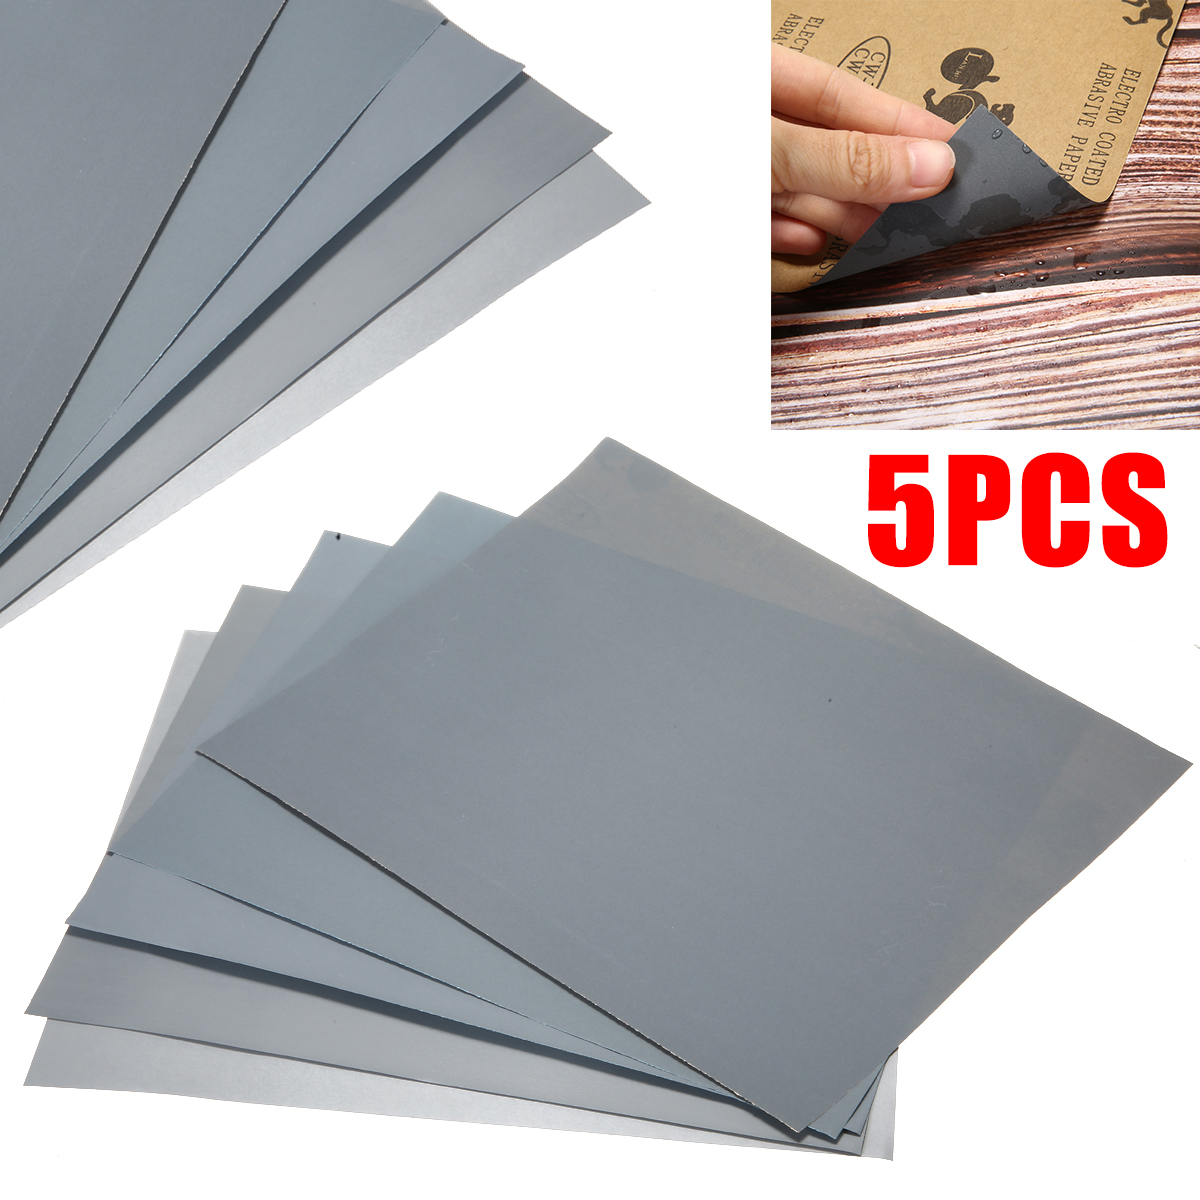 5Pcs Waterproof Sand Papers Wet and Dry Sand Paper Mixed Assorted Grit 2000 2500 3000 5000 7000 for Auto Repairing Painting Tool-in Abrasive Tools from Tools